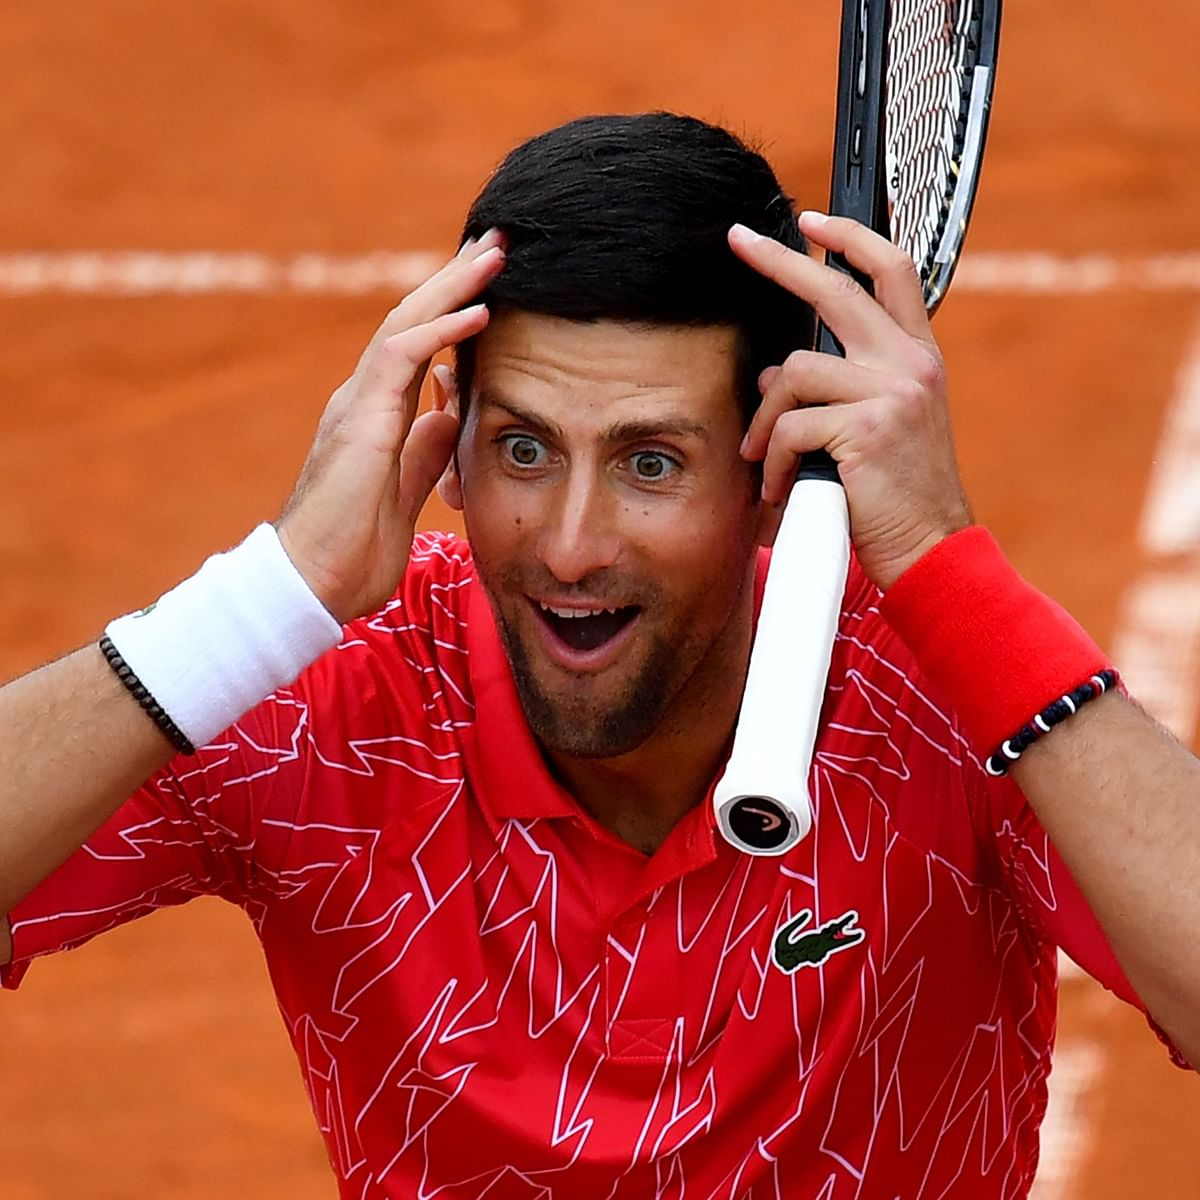 After recovering from COVID-19, Novak Djokovic confirms participation in US Open